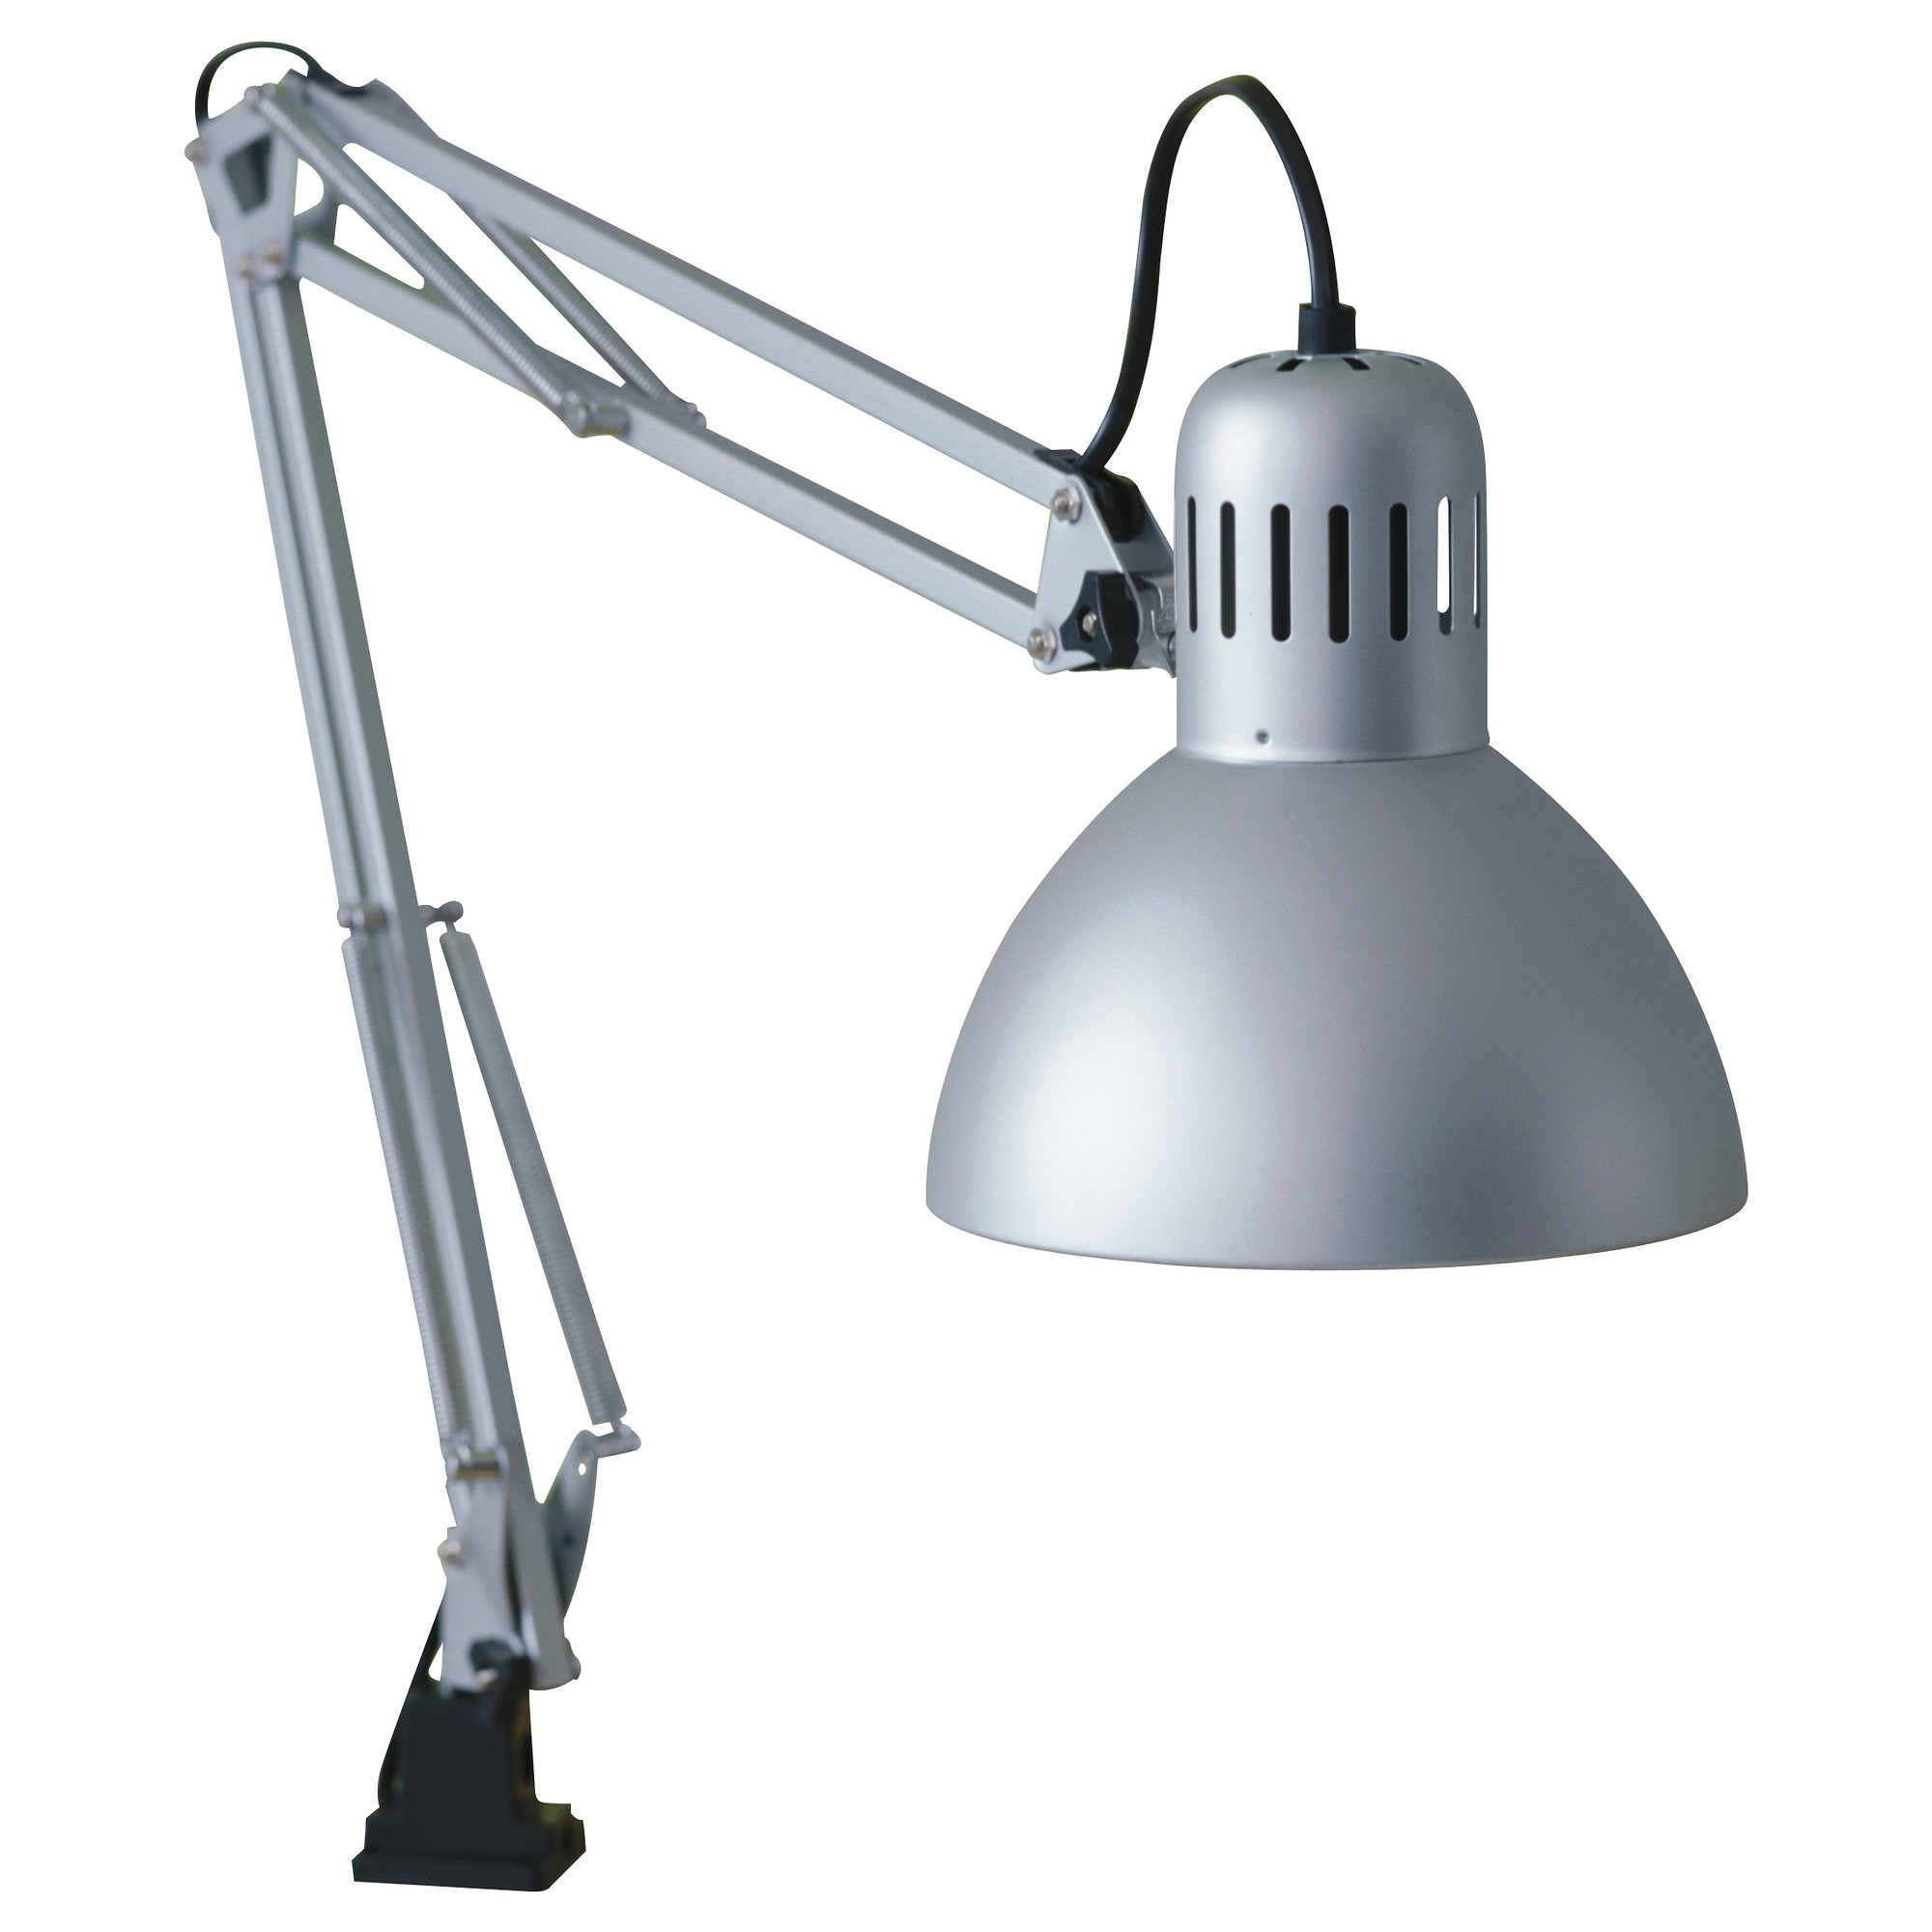 Wall mounted desk lamp - 10 things to know before installing Warisan Lighting